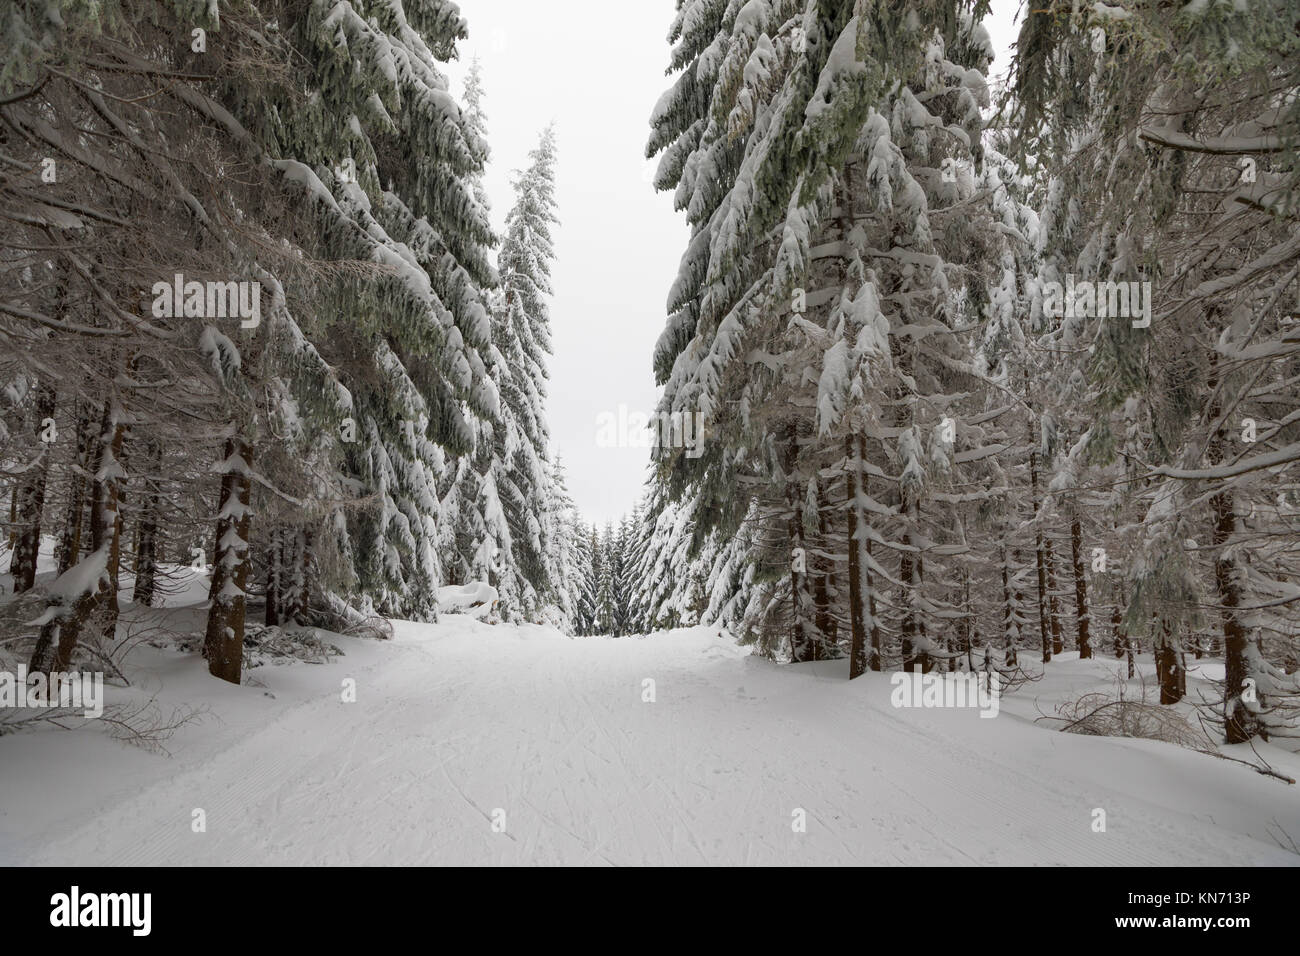 Winter landscape with high spruces and snow in mountains - Stock Image